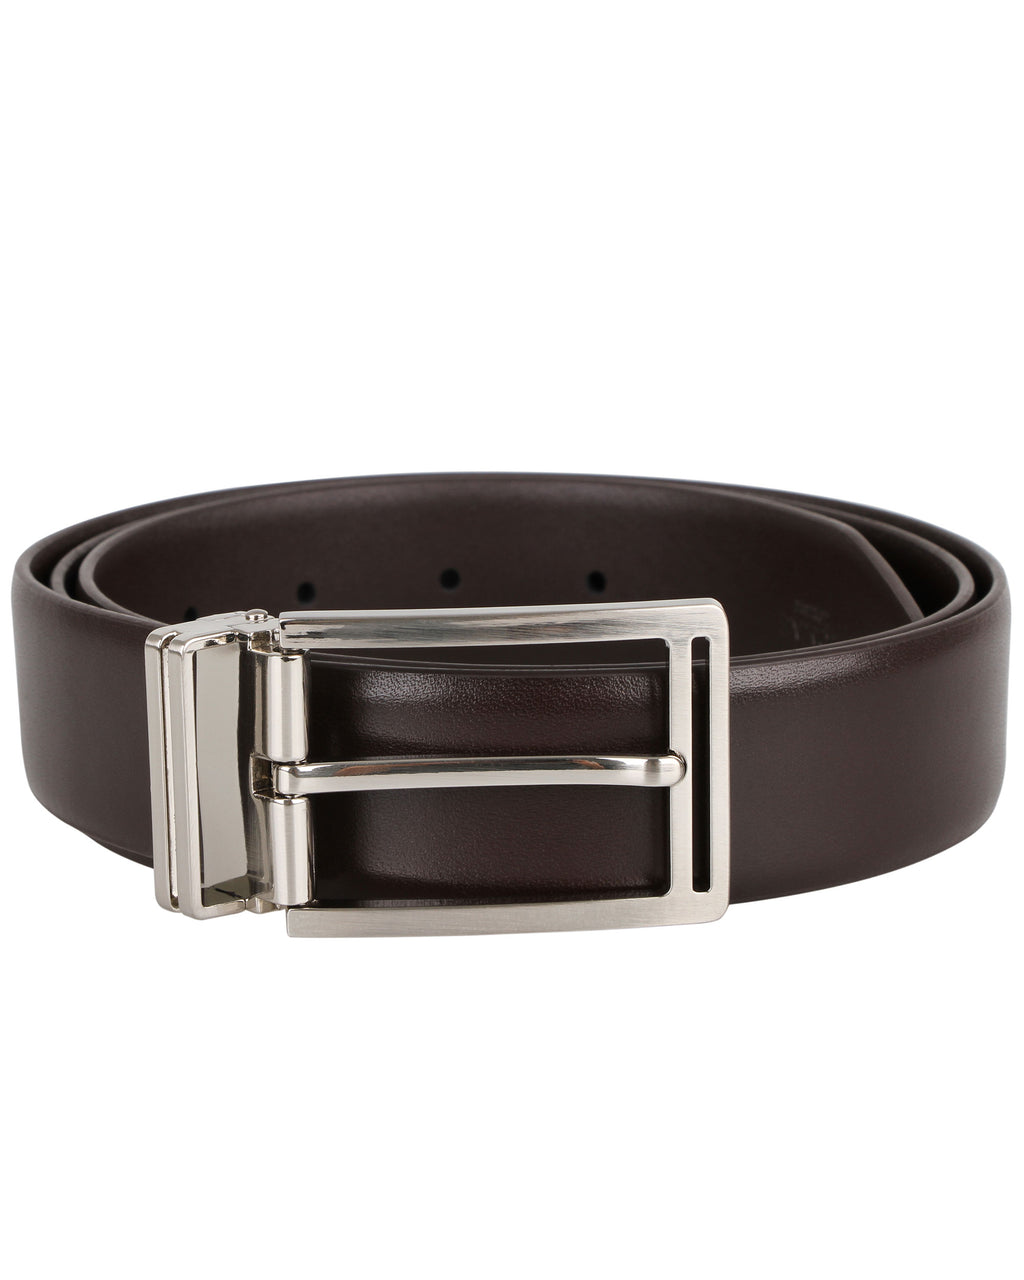 Tomaz Belt NT165 (Brown)